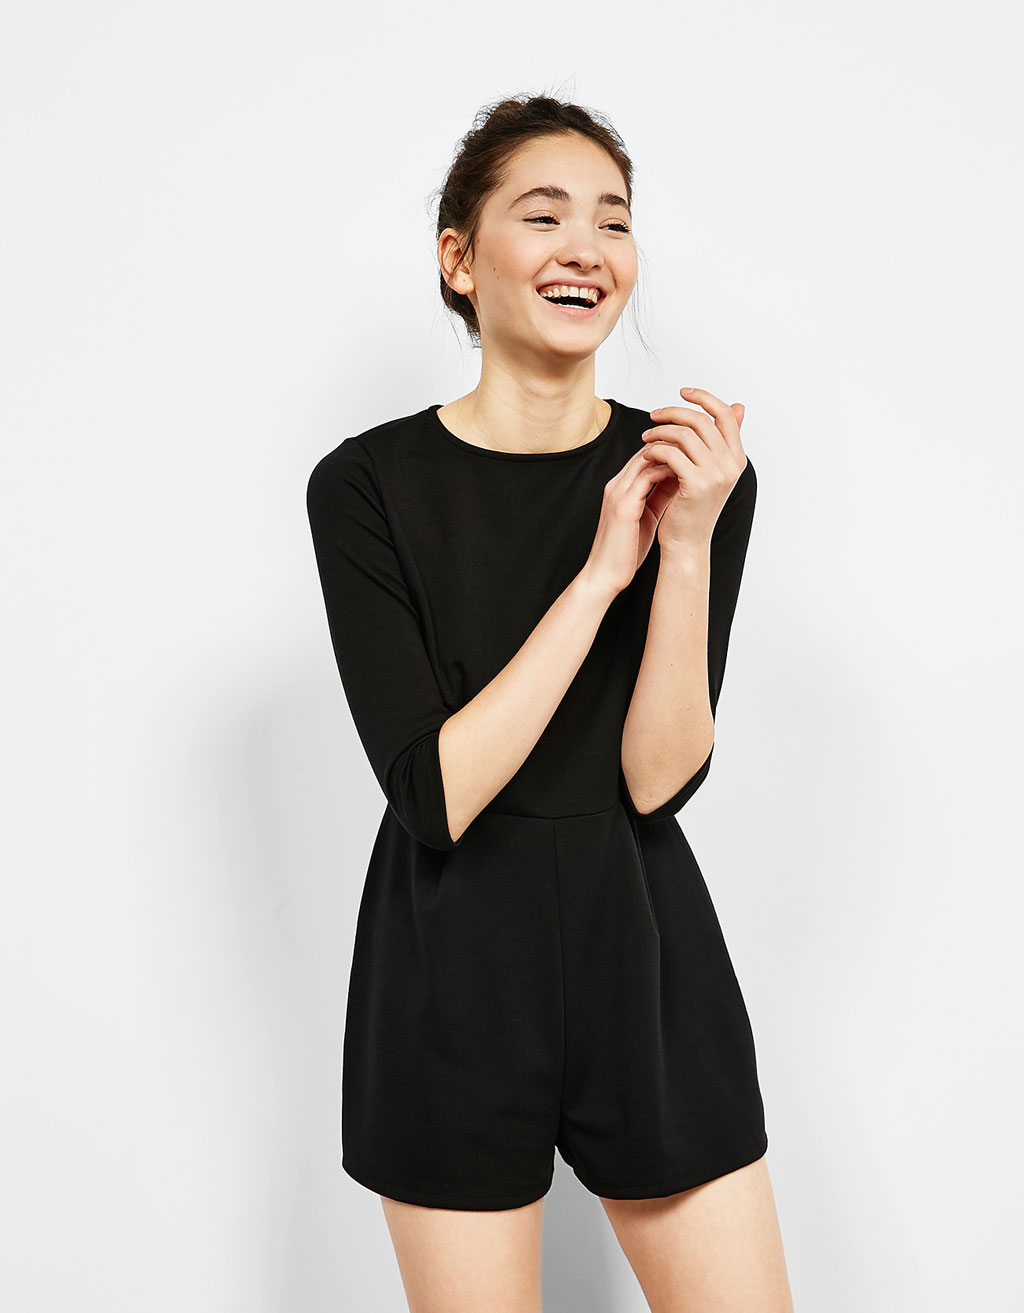 Ottoman short jumpsuit with 3/4 length sleeves